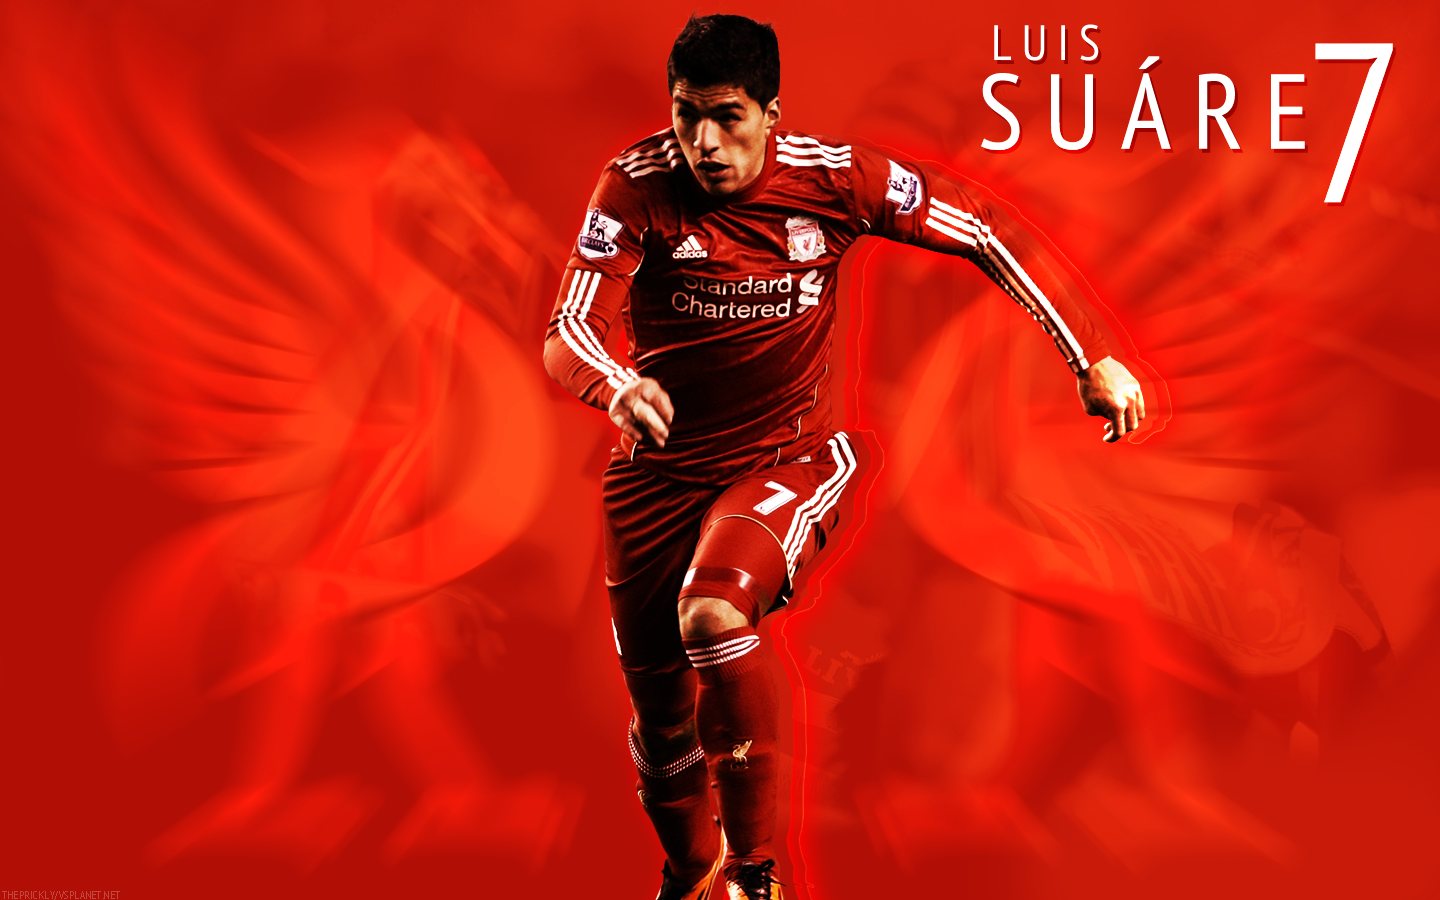 Luis Suarez Wallpapers High Resolution and Quality Download 1440x900